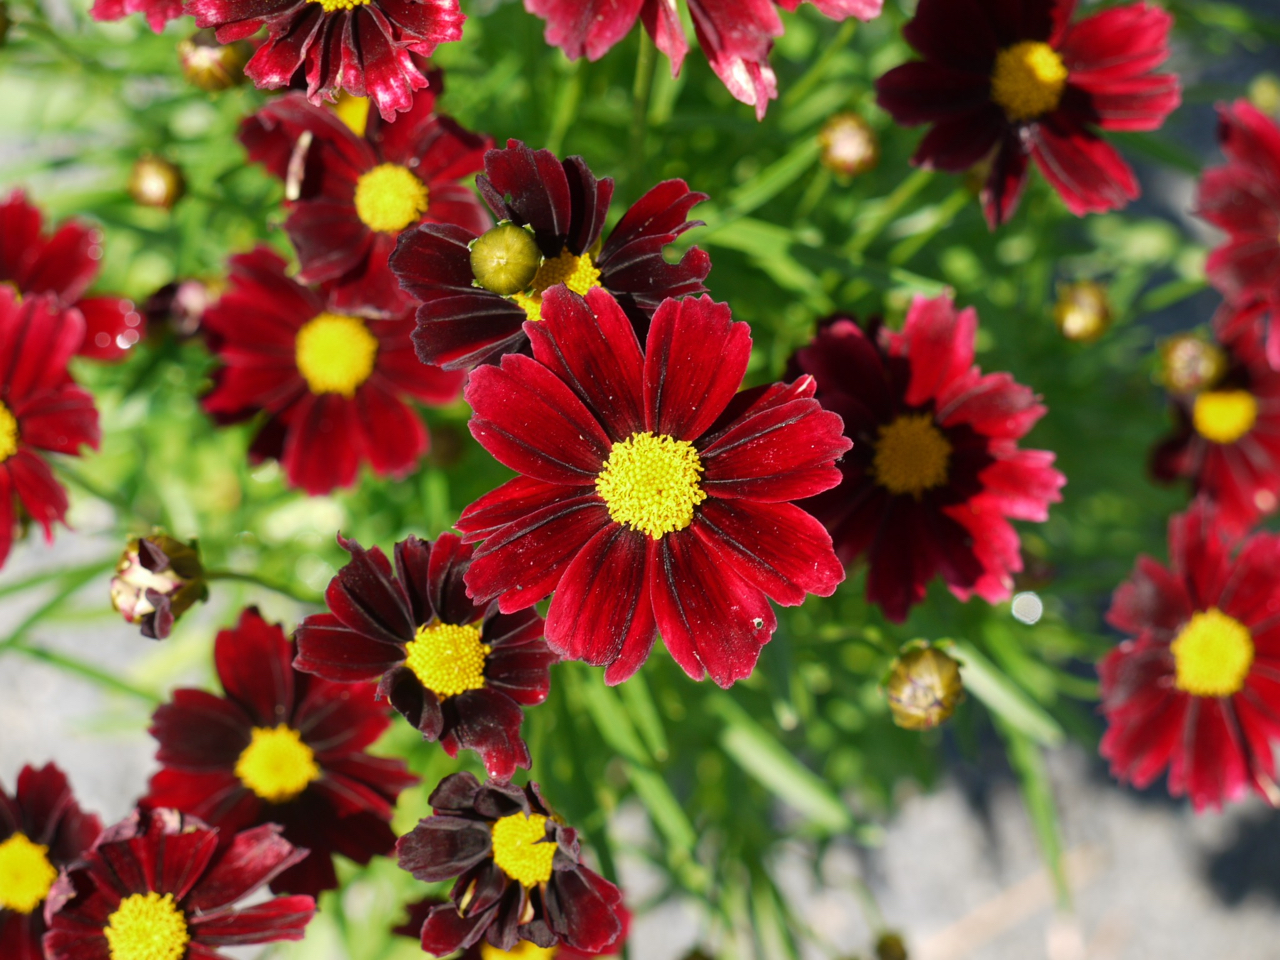 Coreopsis Little Bang Red Elf Gootjes Allplant Bv